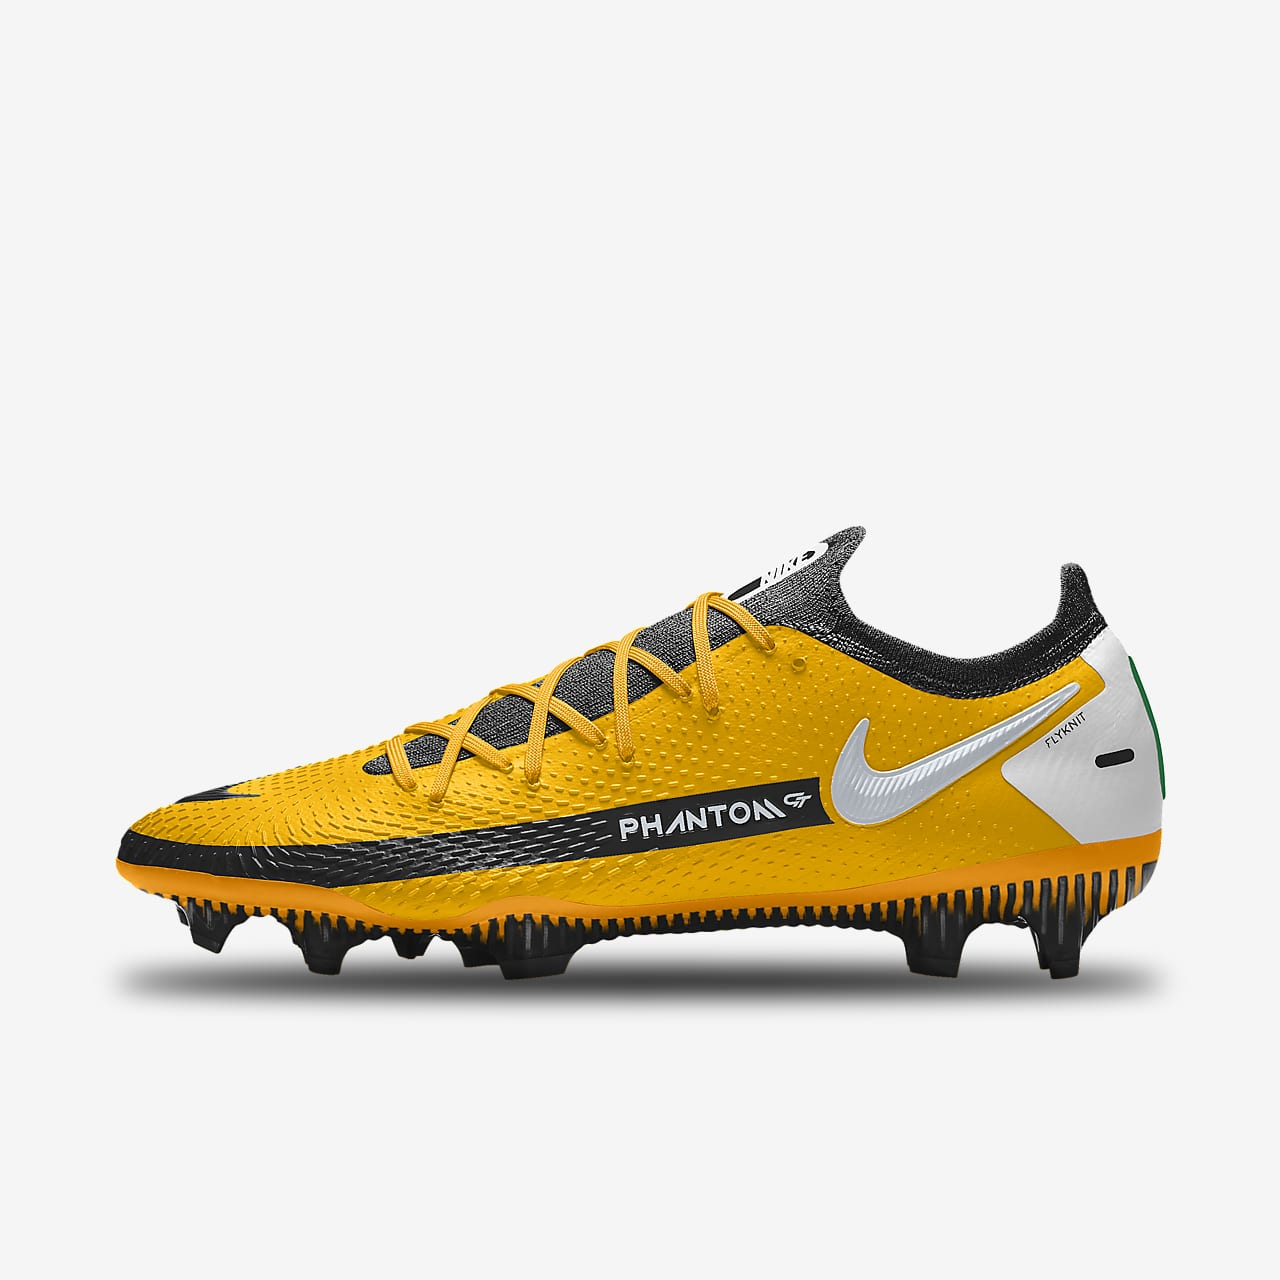 Chaussure de football à crampons pour terrain sec personnalisable Nike Phantom GT Elite By You